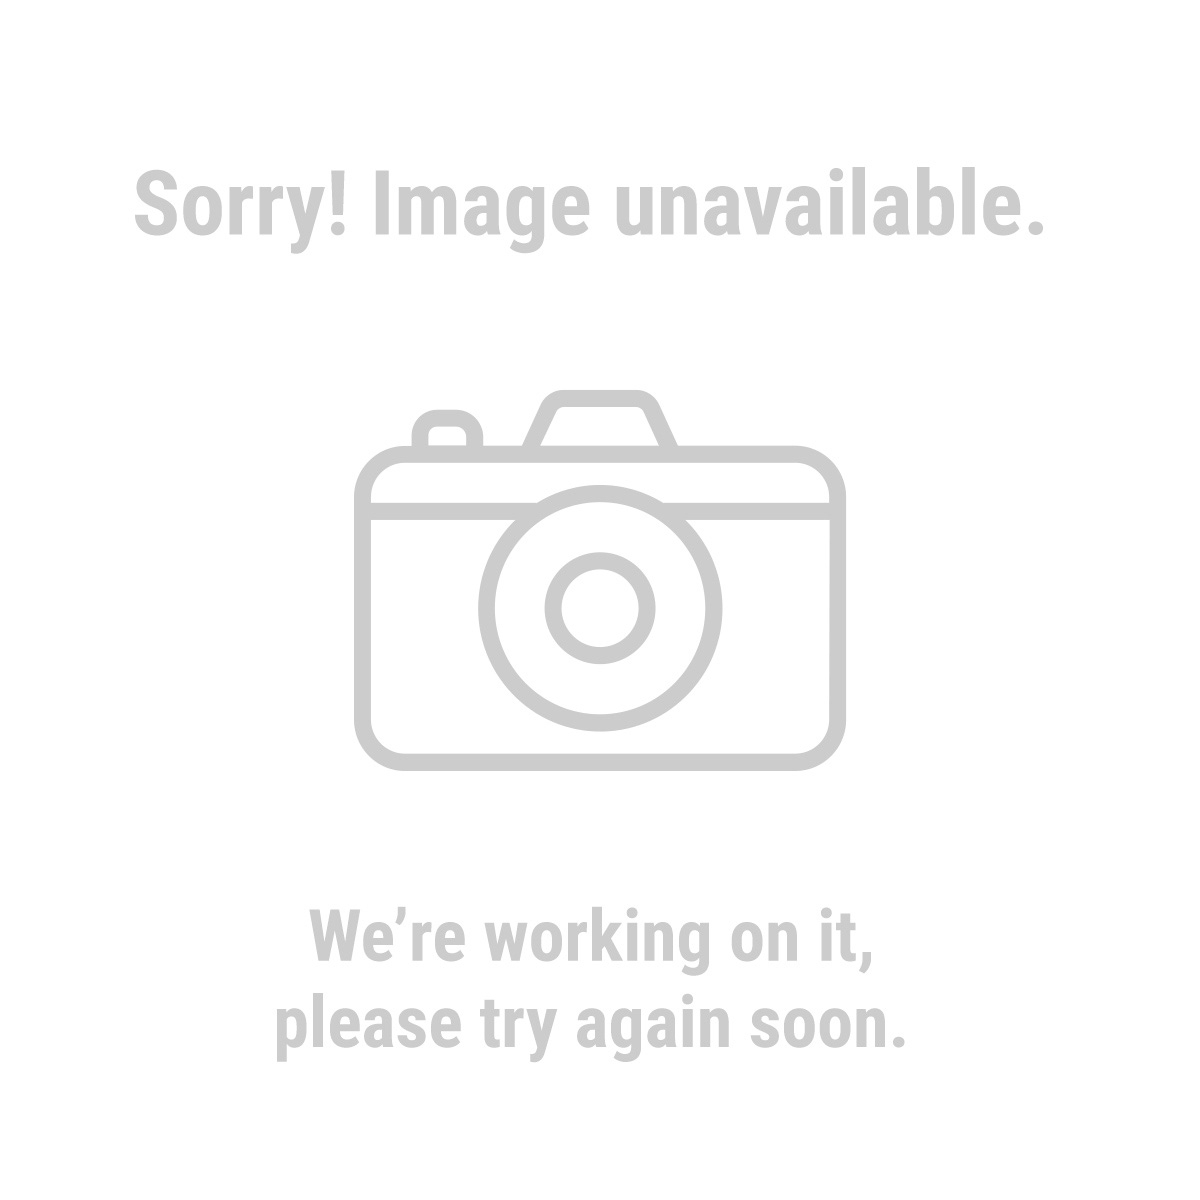 Pittsburgh 62122 6 in. Ratchet Bar Clamp/Spreader